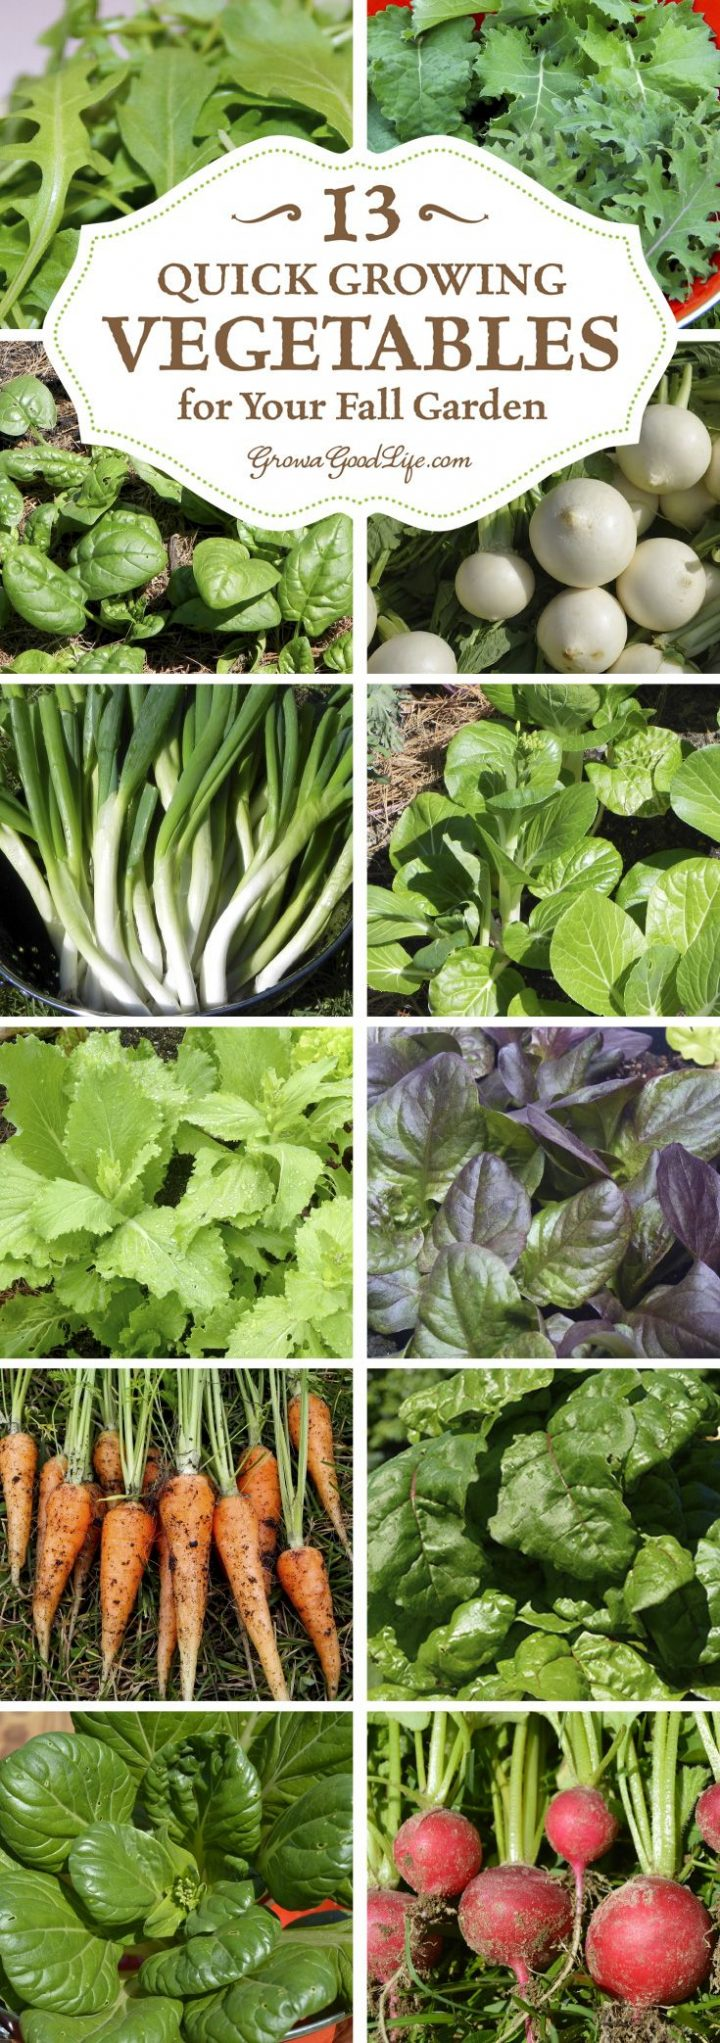 13 fast-growing vegetables for your fall garden